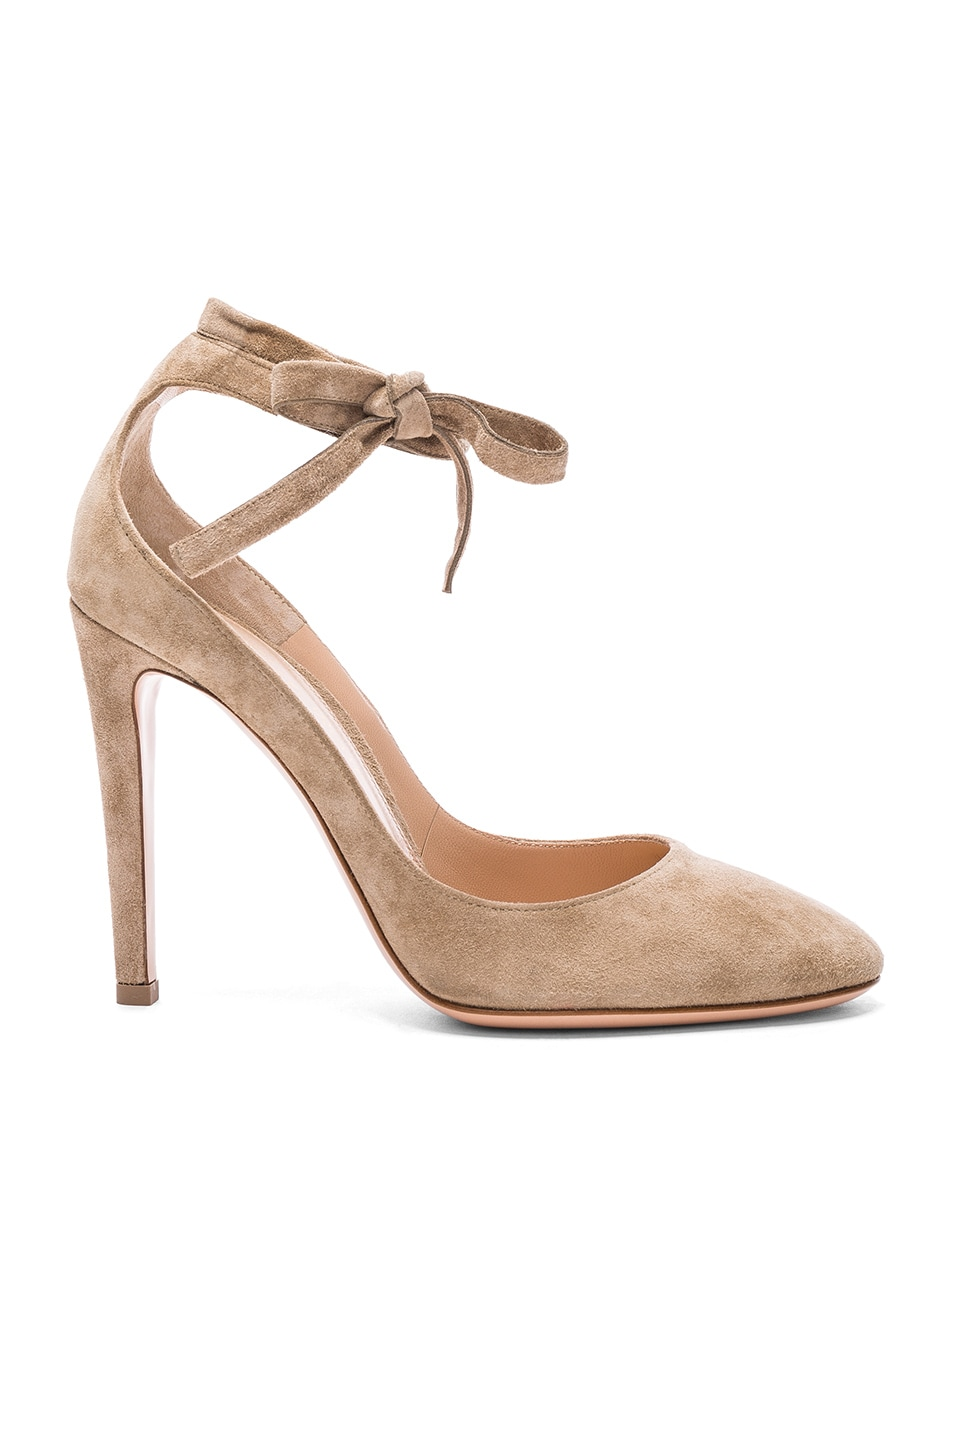 Image 1 of Gianvito Rossi Suede Carla Pumps in Bisque